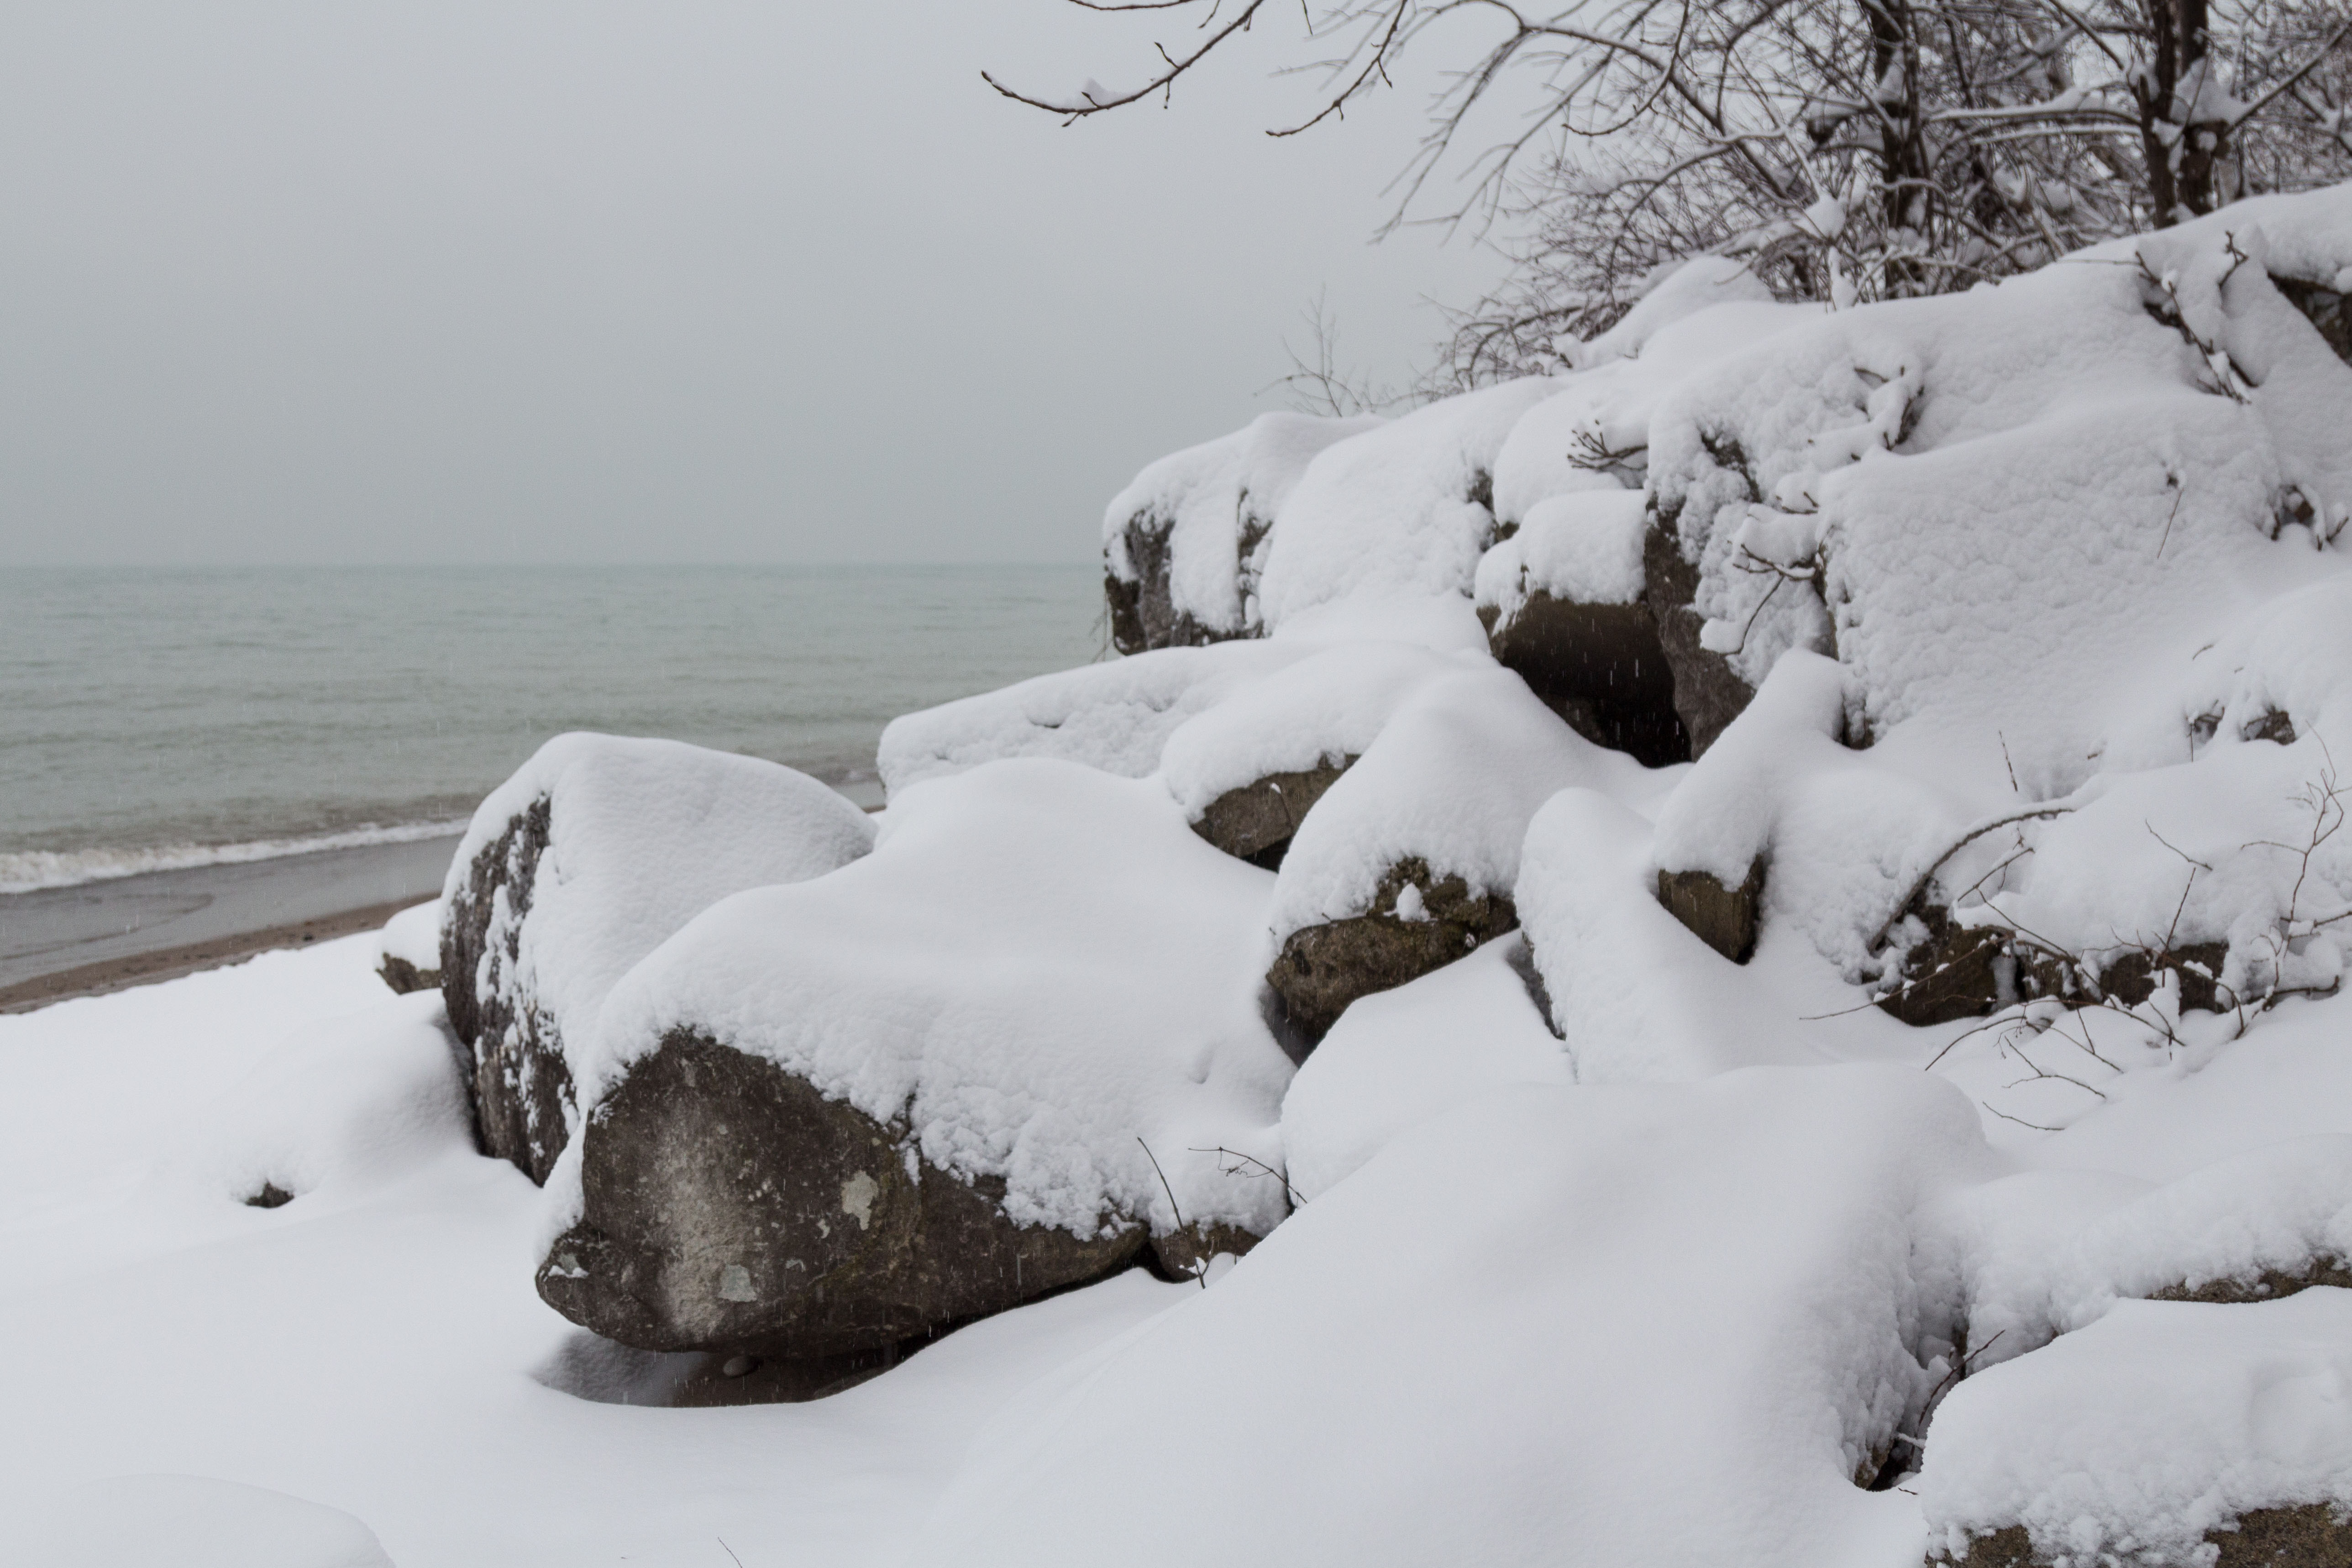 Snowfall on the Lake Michigan Beachfront in Southeast, WI | https://www.roseclearfield.com